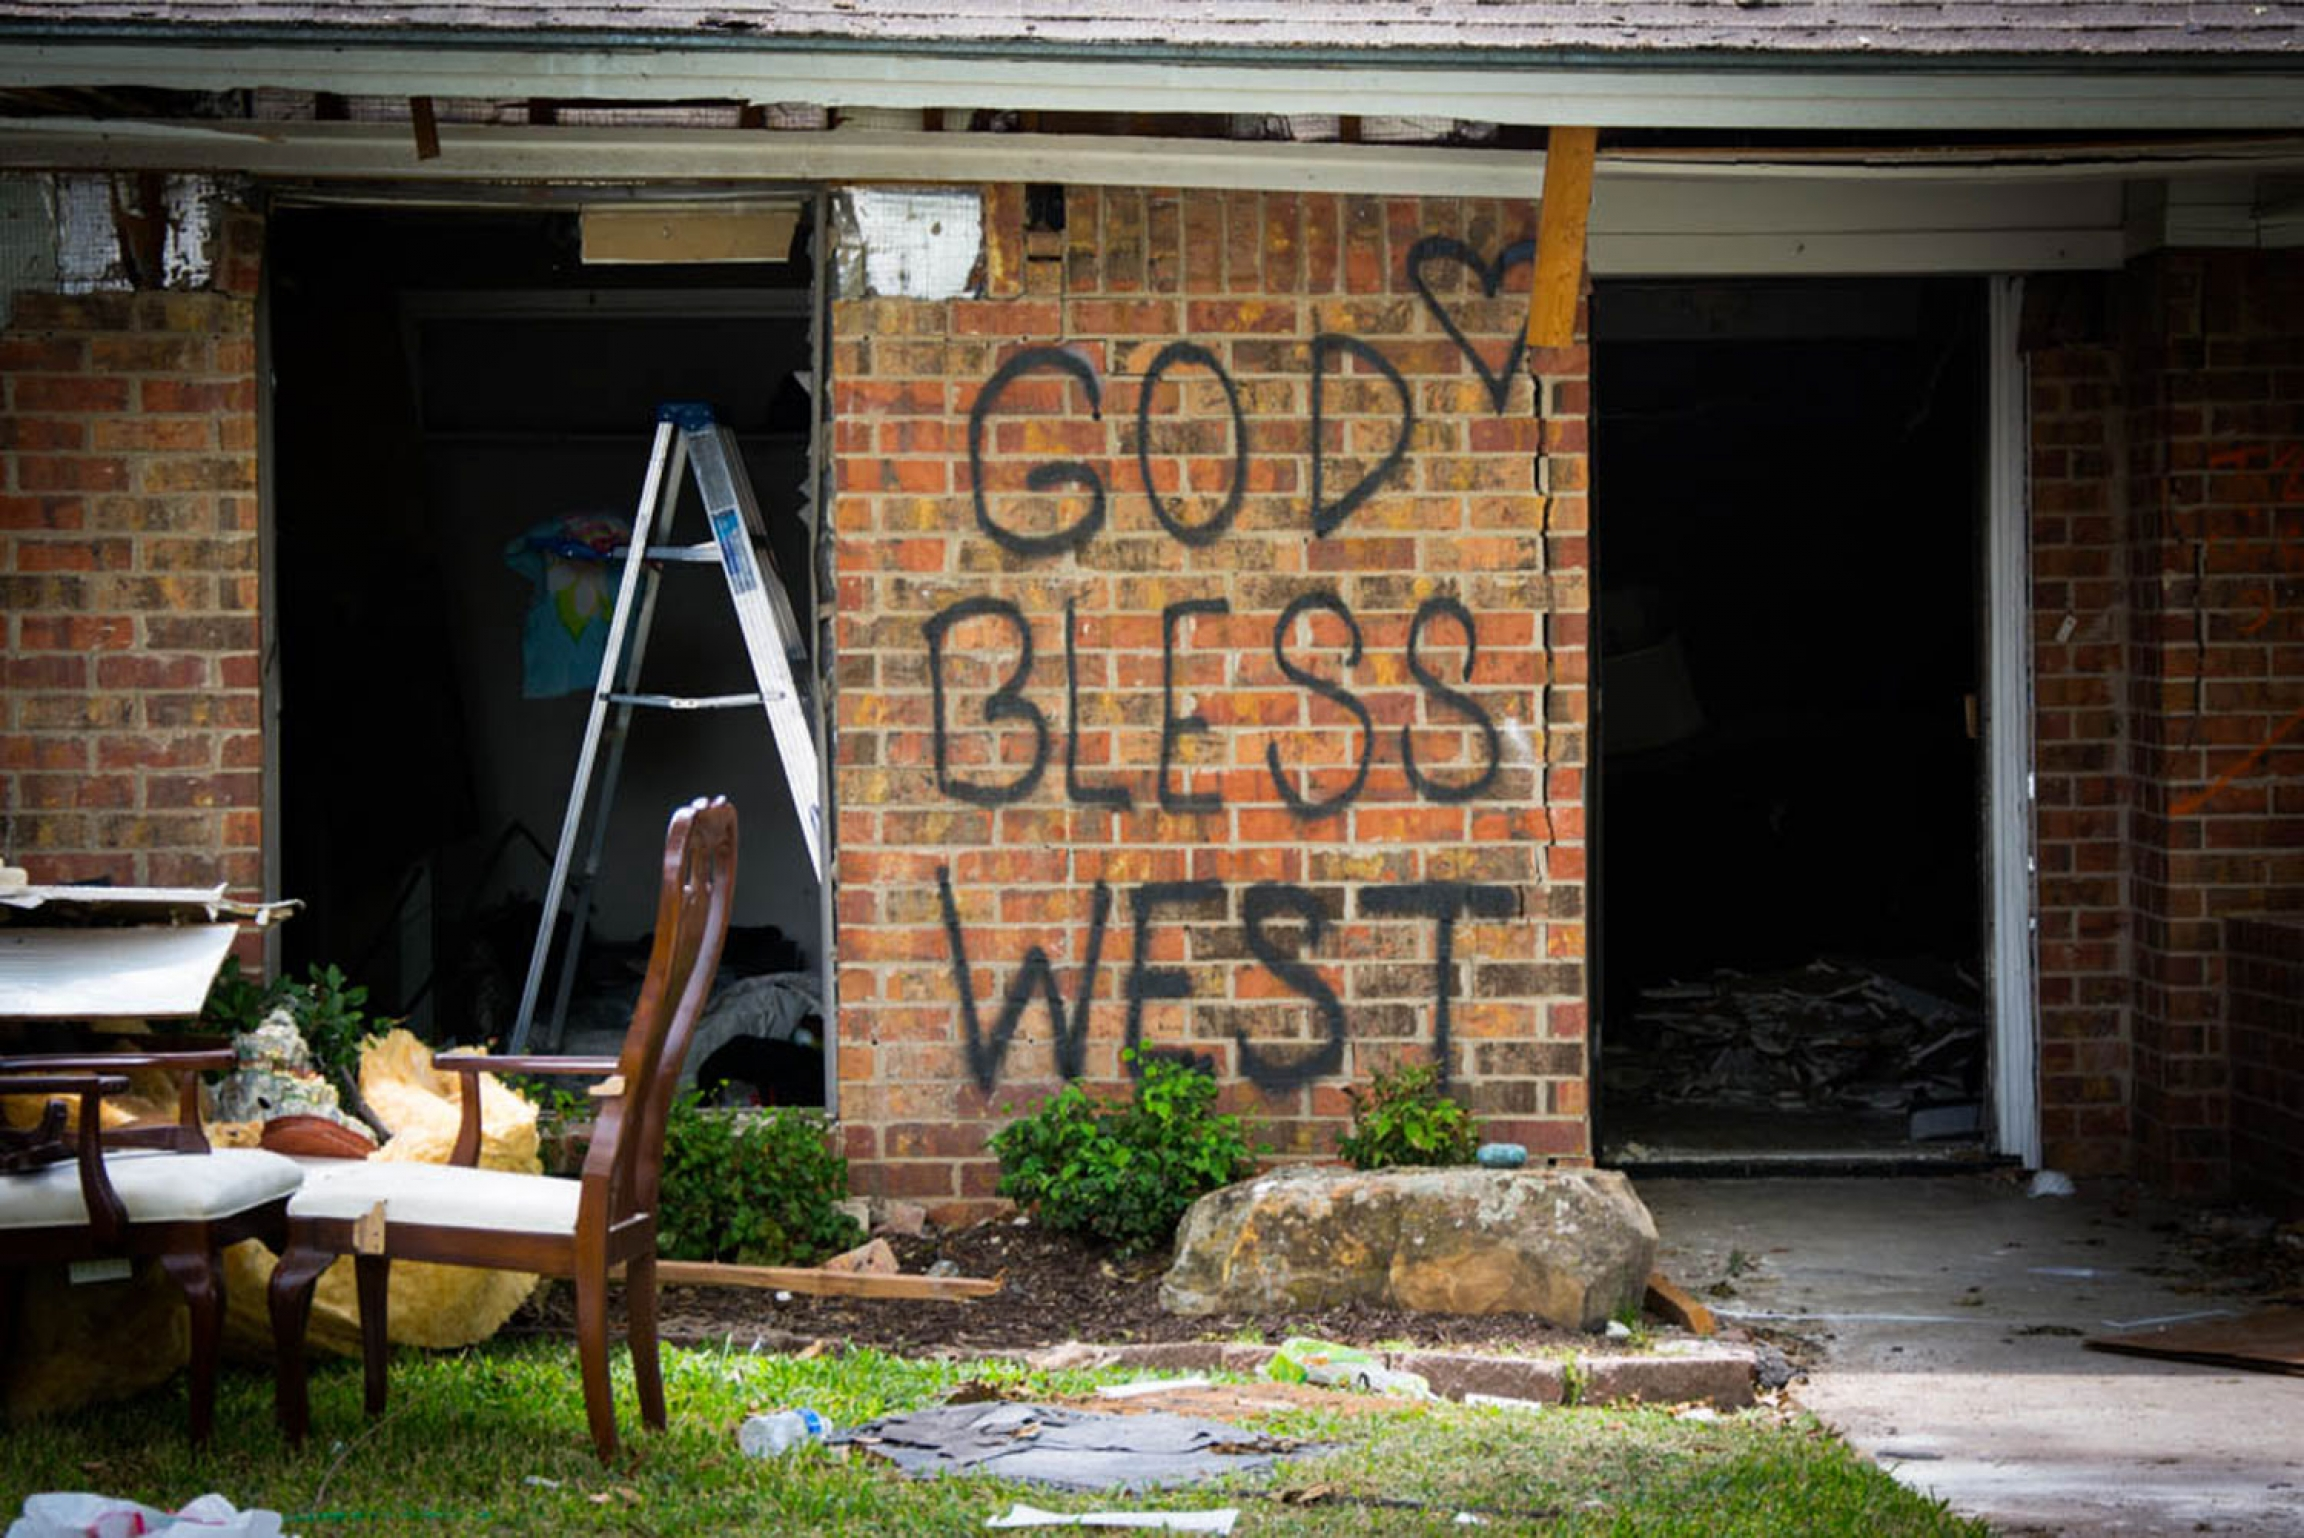 A heavily damaged home is shown with the words, 'God Bless West' spray-painted on it.